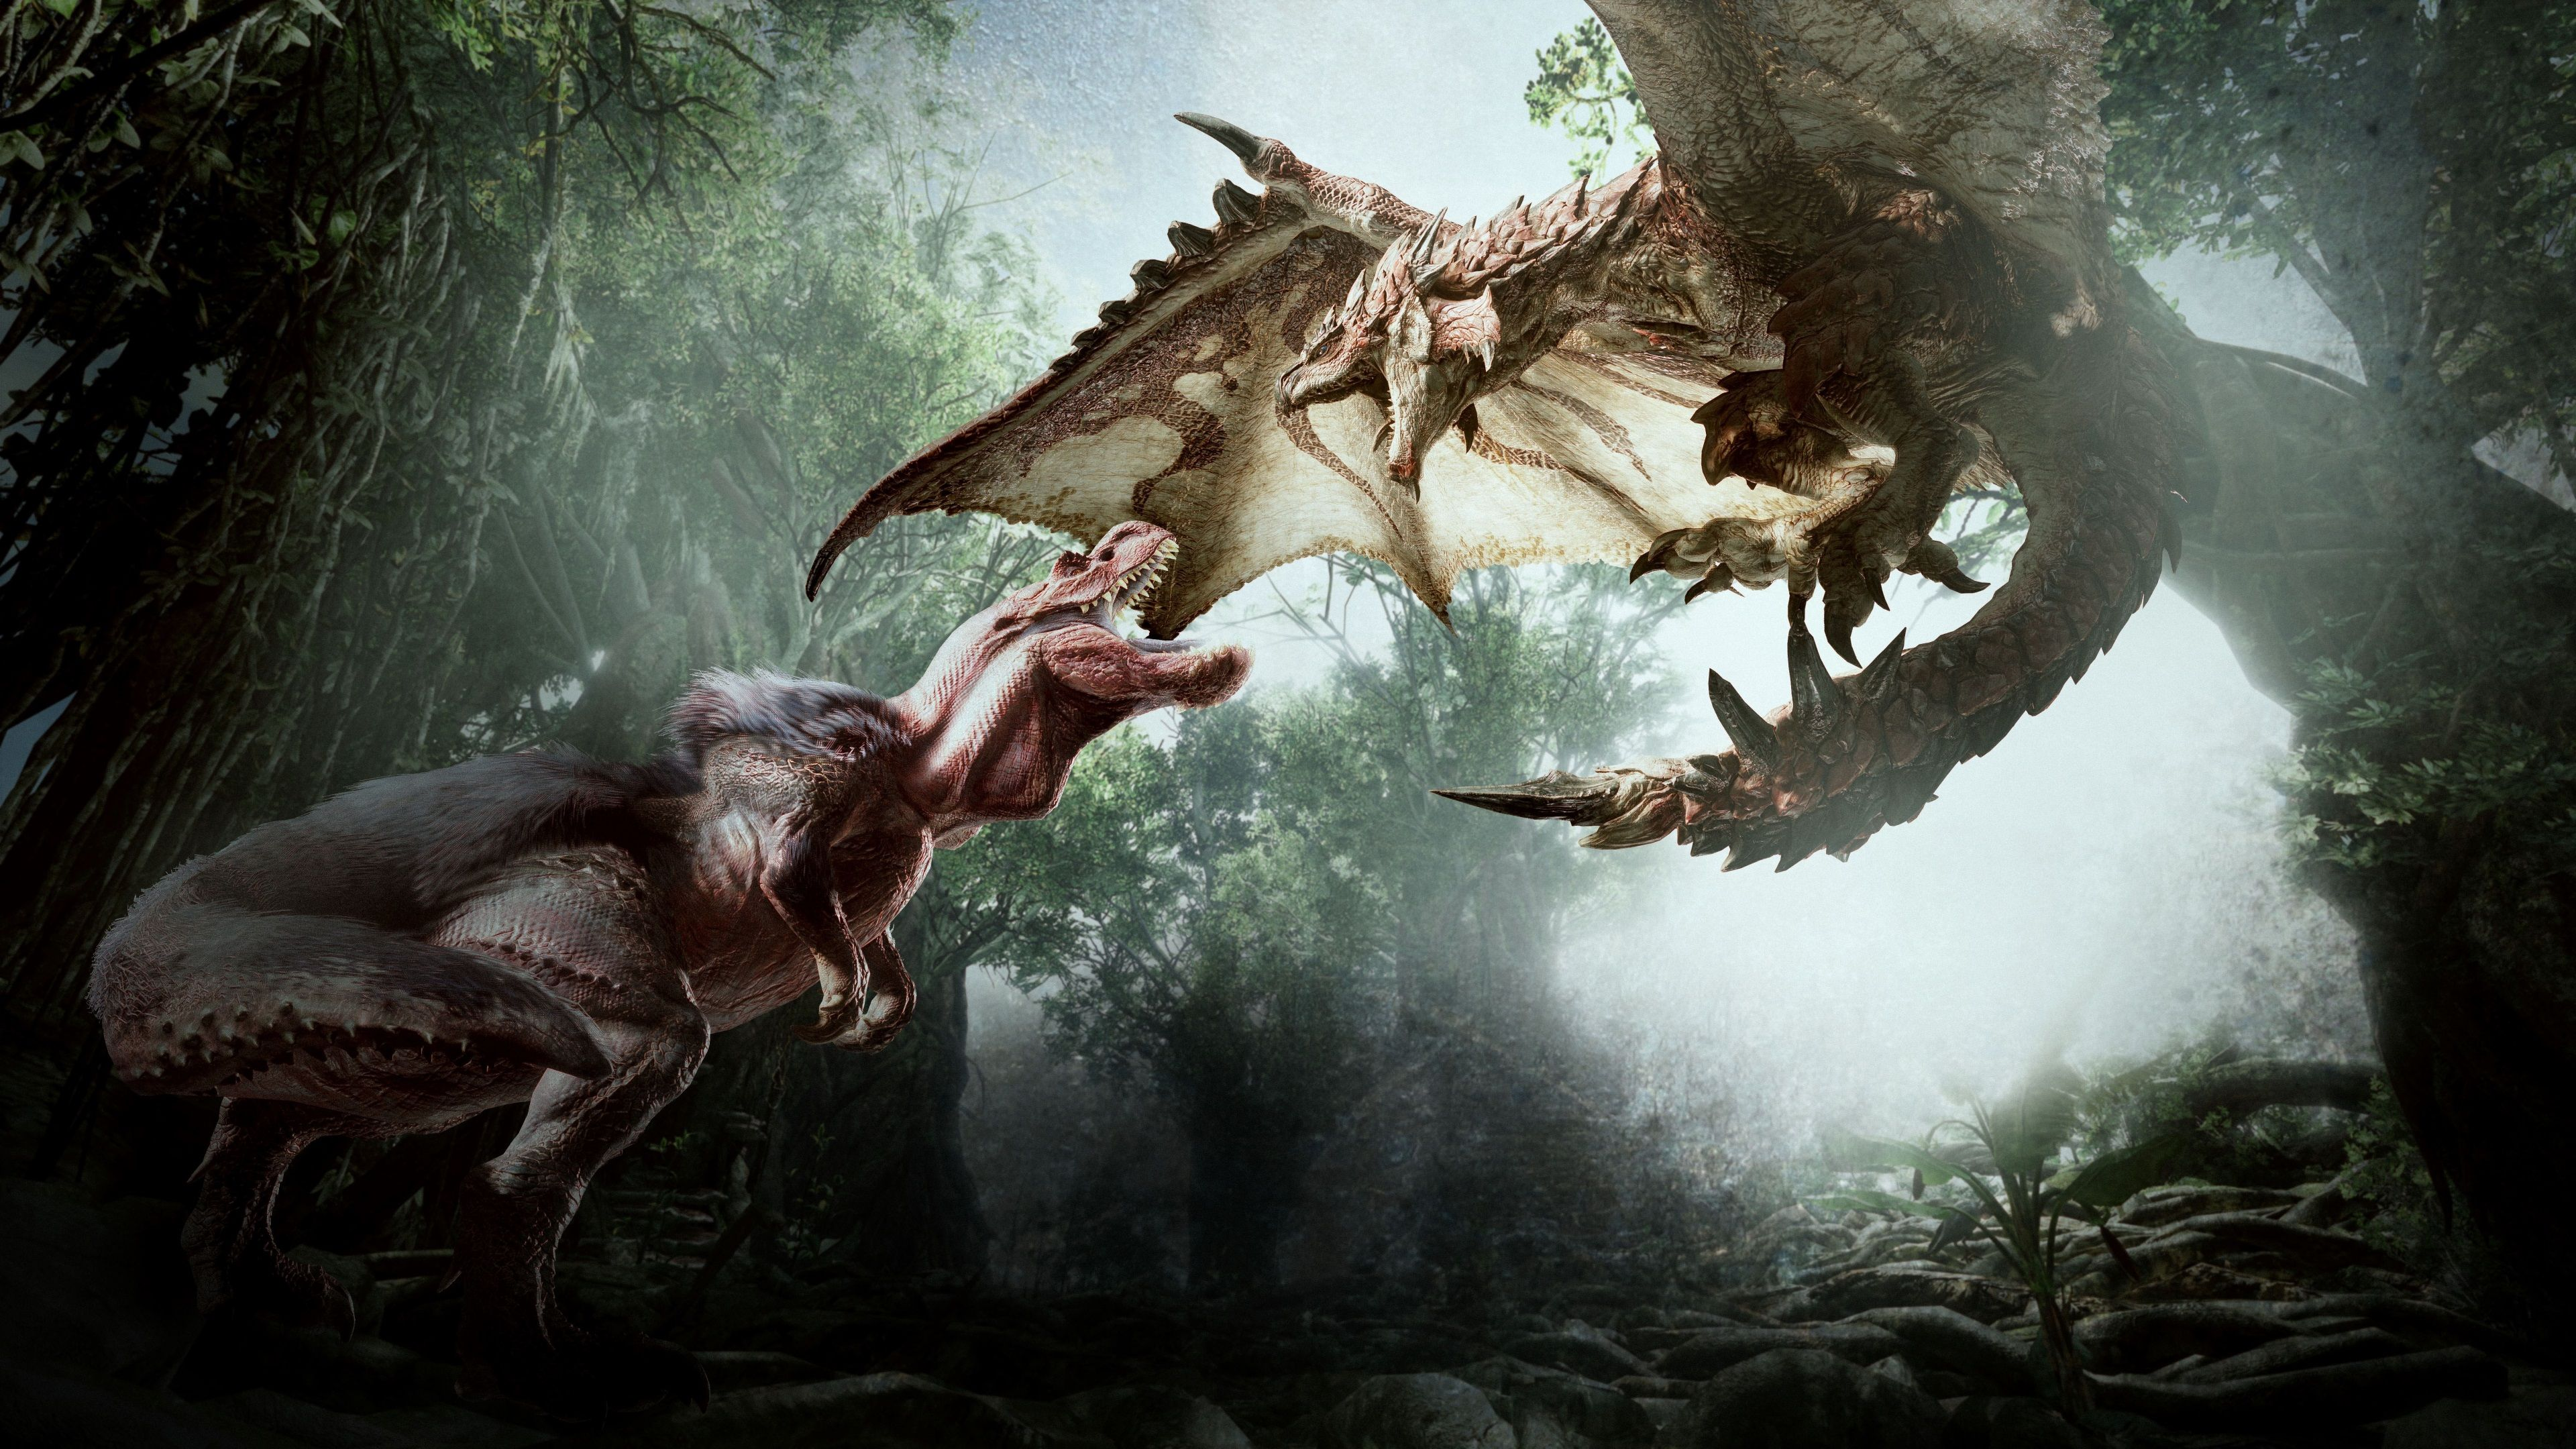 3840x2160 Monster Hunter World 4k Free Download Wallpaper For Pc Hd Monster Hunter World Wallpaper Monster Hunter Monster Hunter World